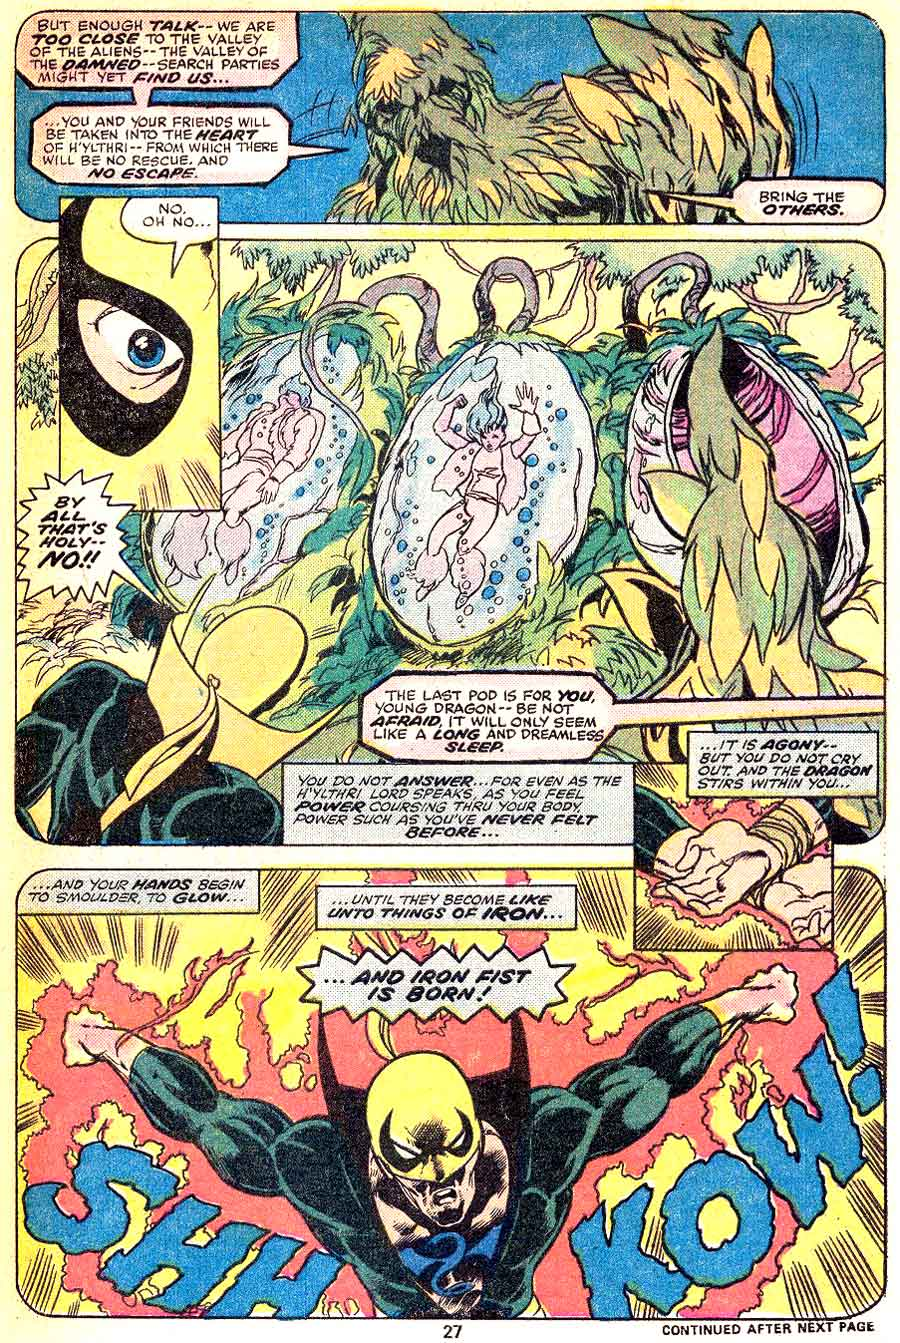 Iron Fist v1 #2 marvel bronze age comic book page art by John Byrne